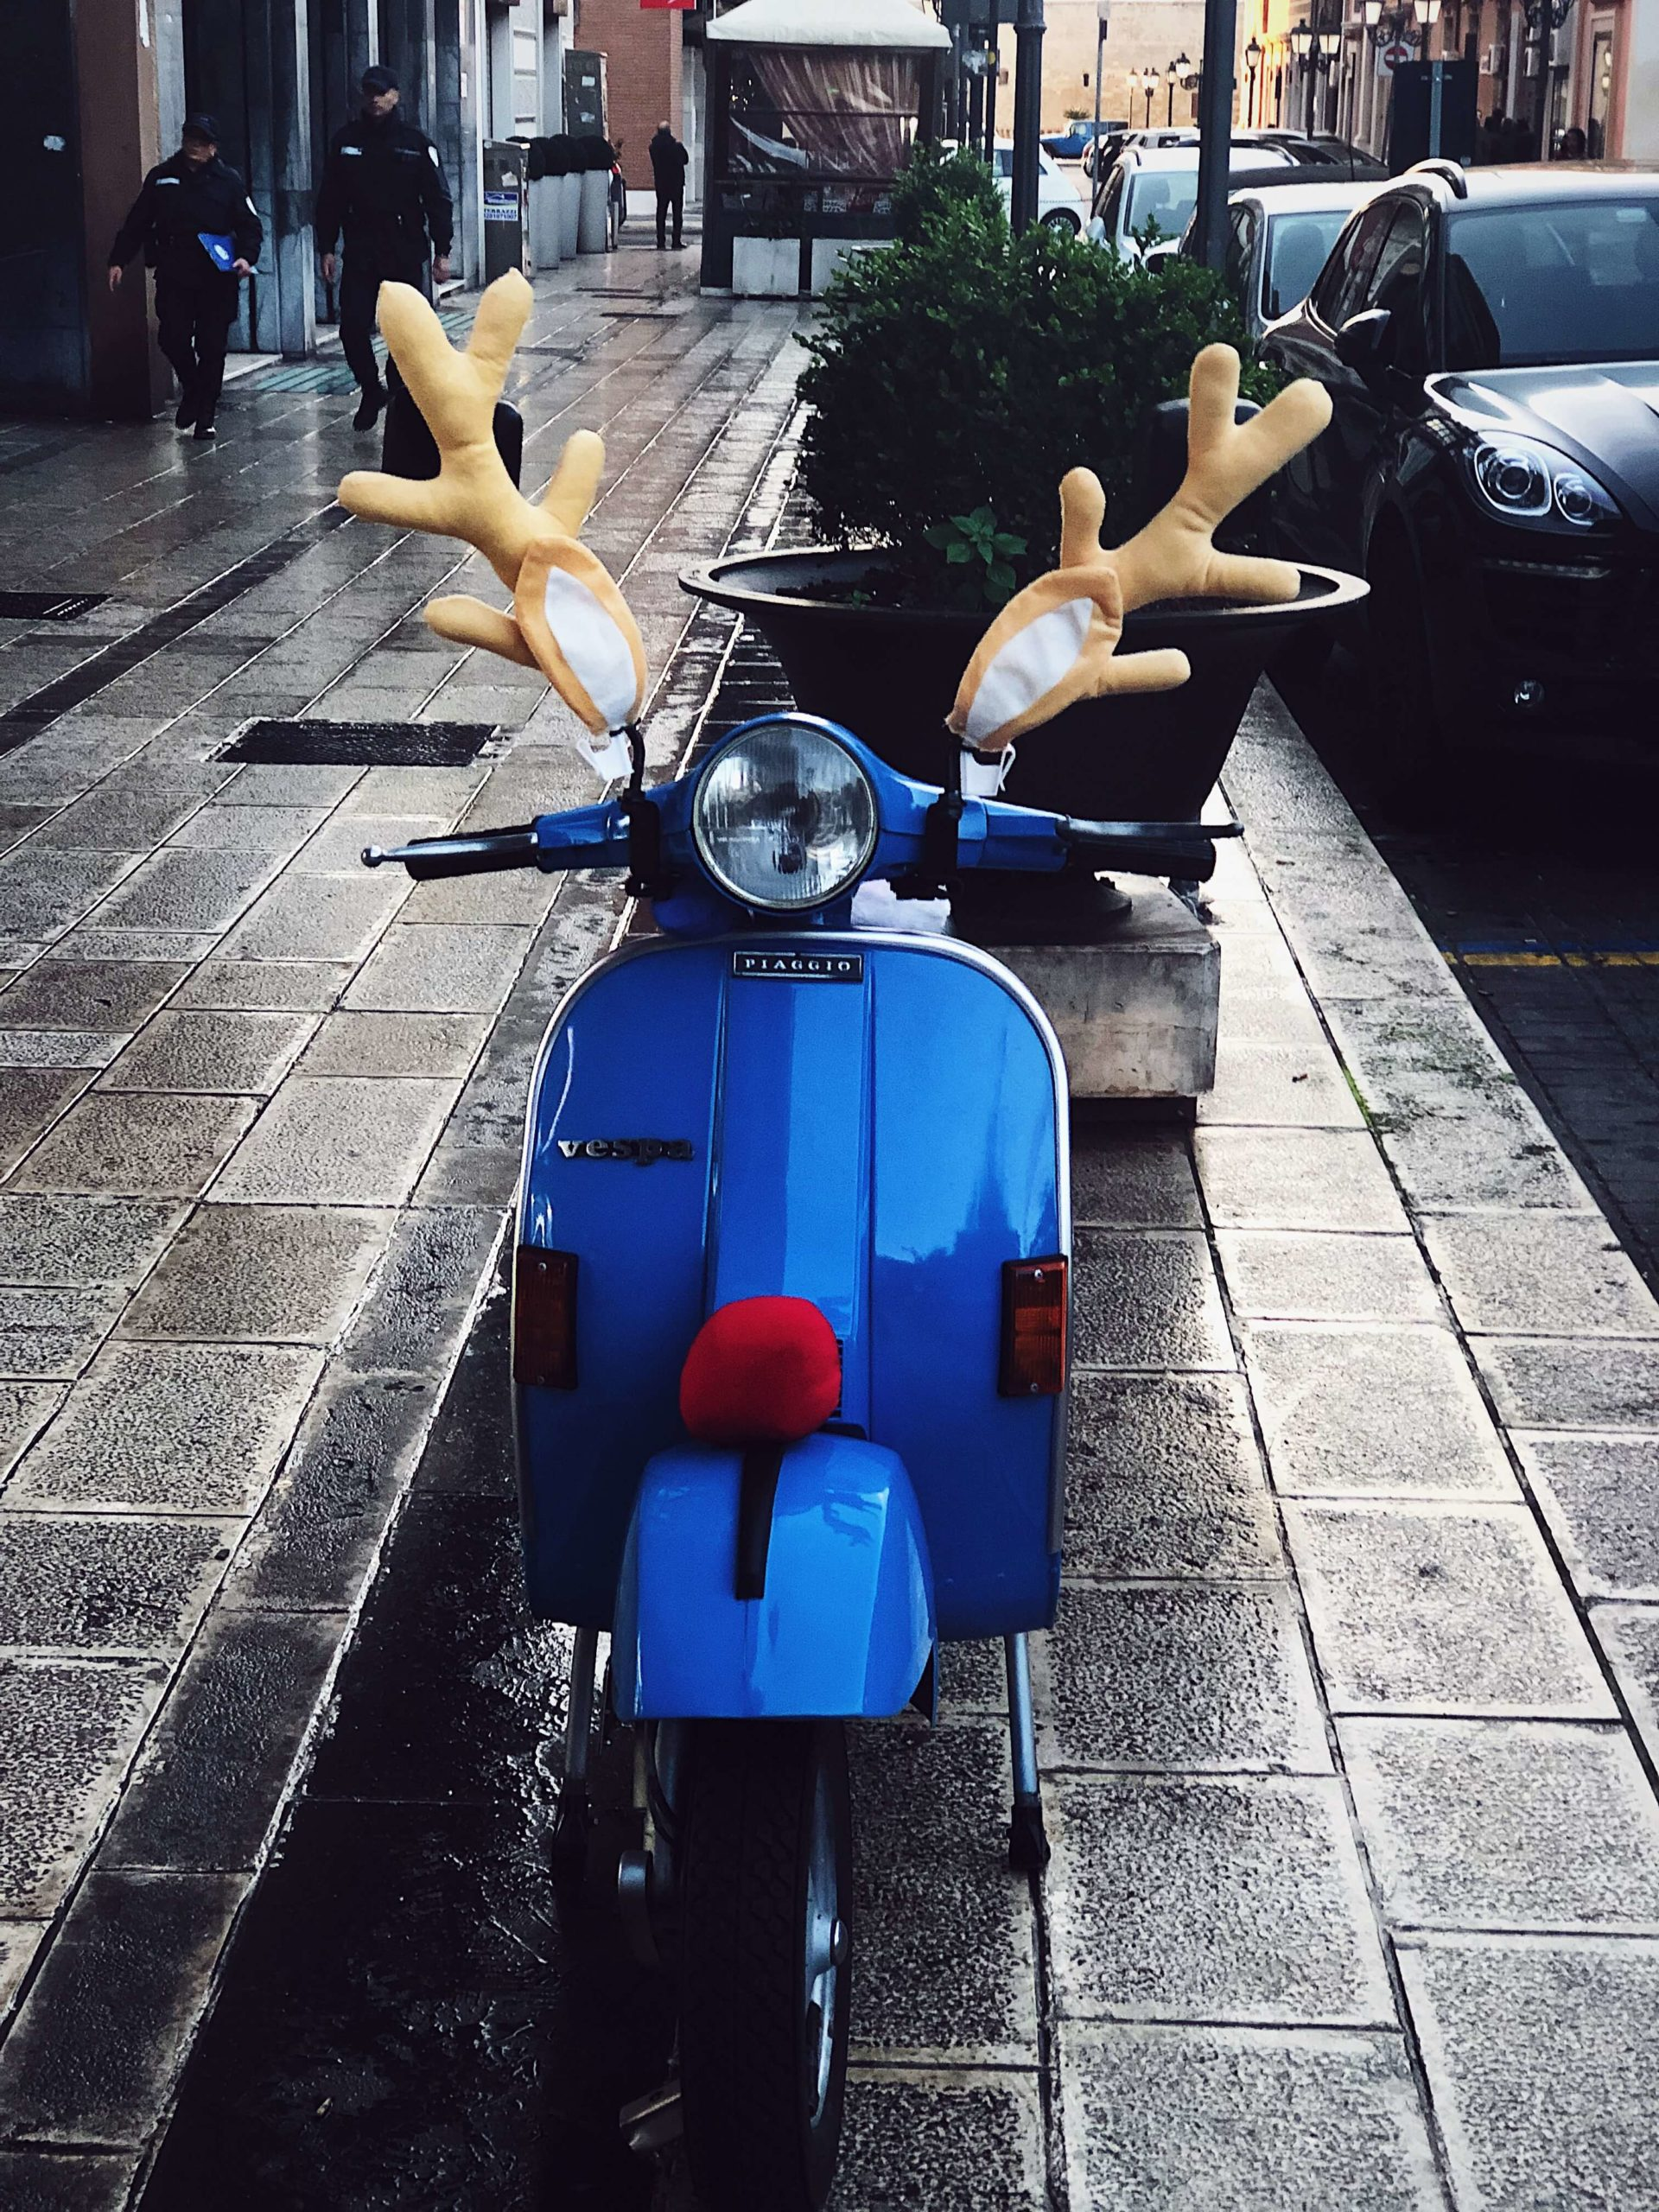 Christmas decorated vespa